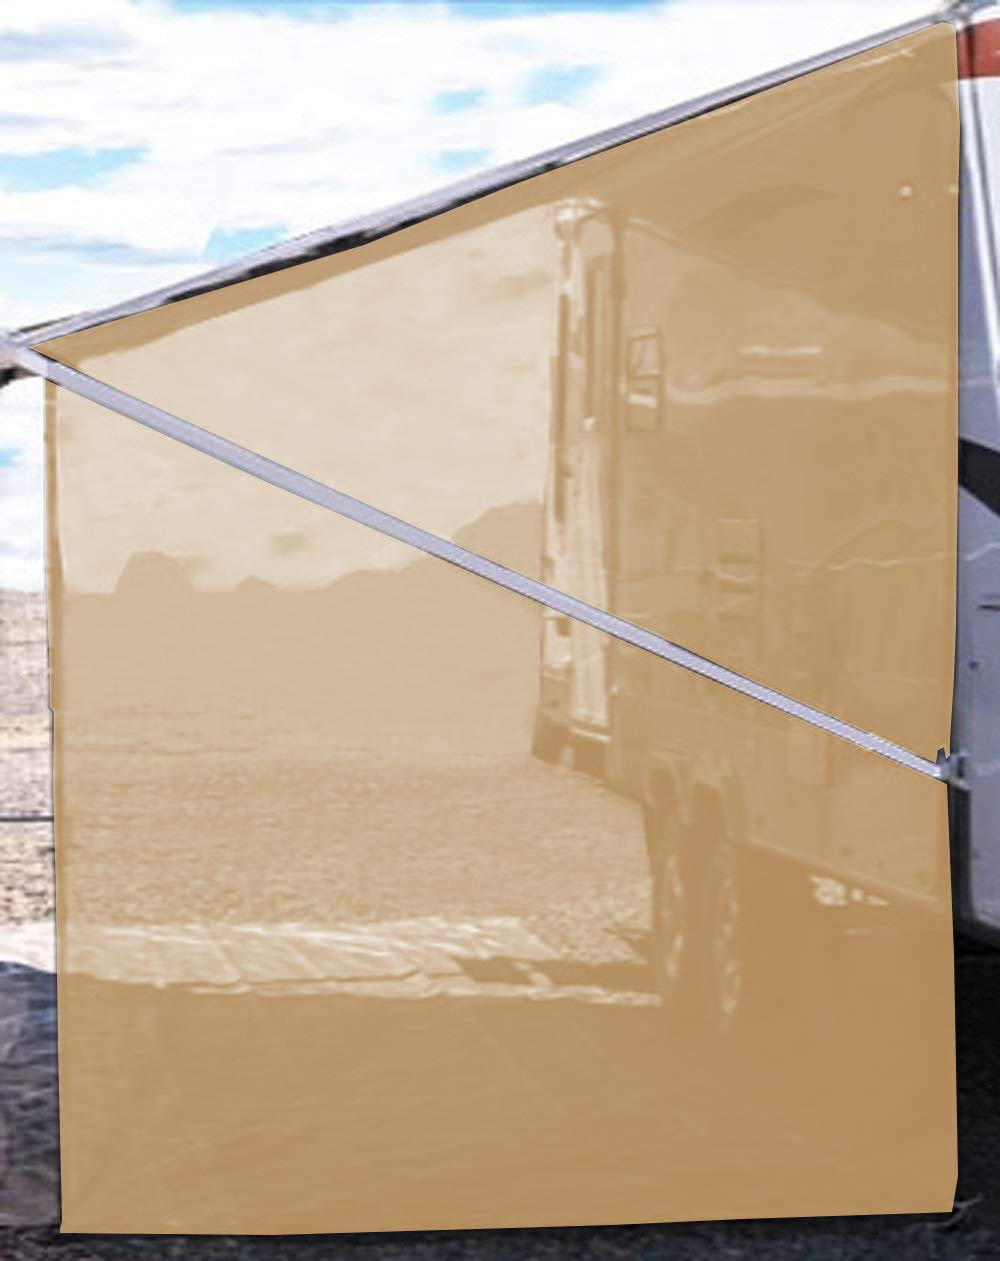 Tentproinc RV Awning Side Shade 9 X7 – Beige Mesh Screen Sunshade Complete Kits Camping Trailer Canopy UV Sun Blocker – 3 Years Limited Warranty